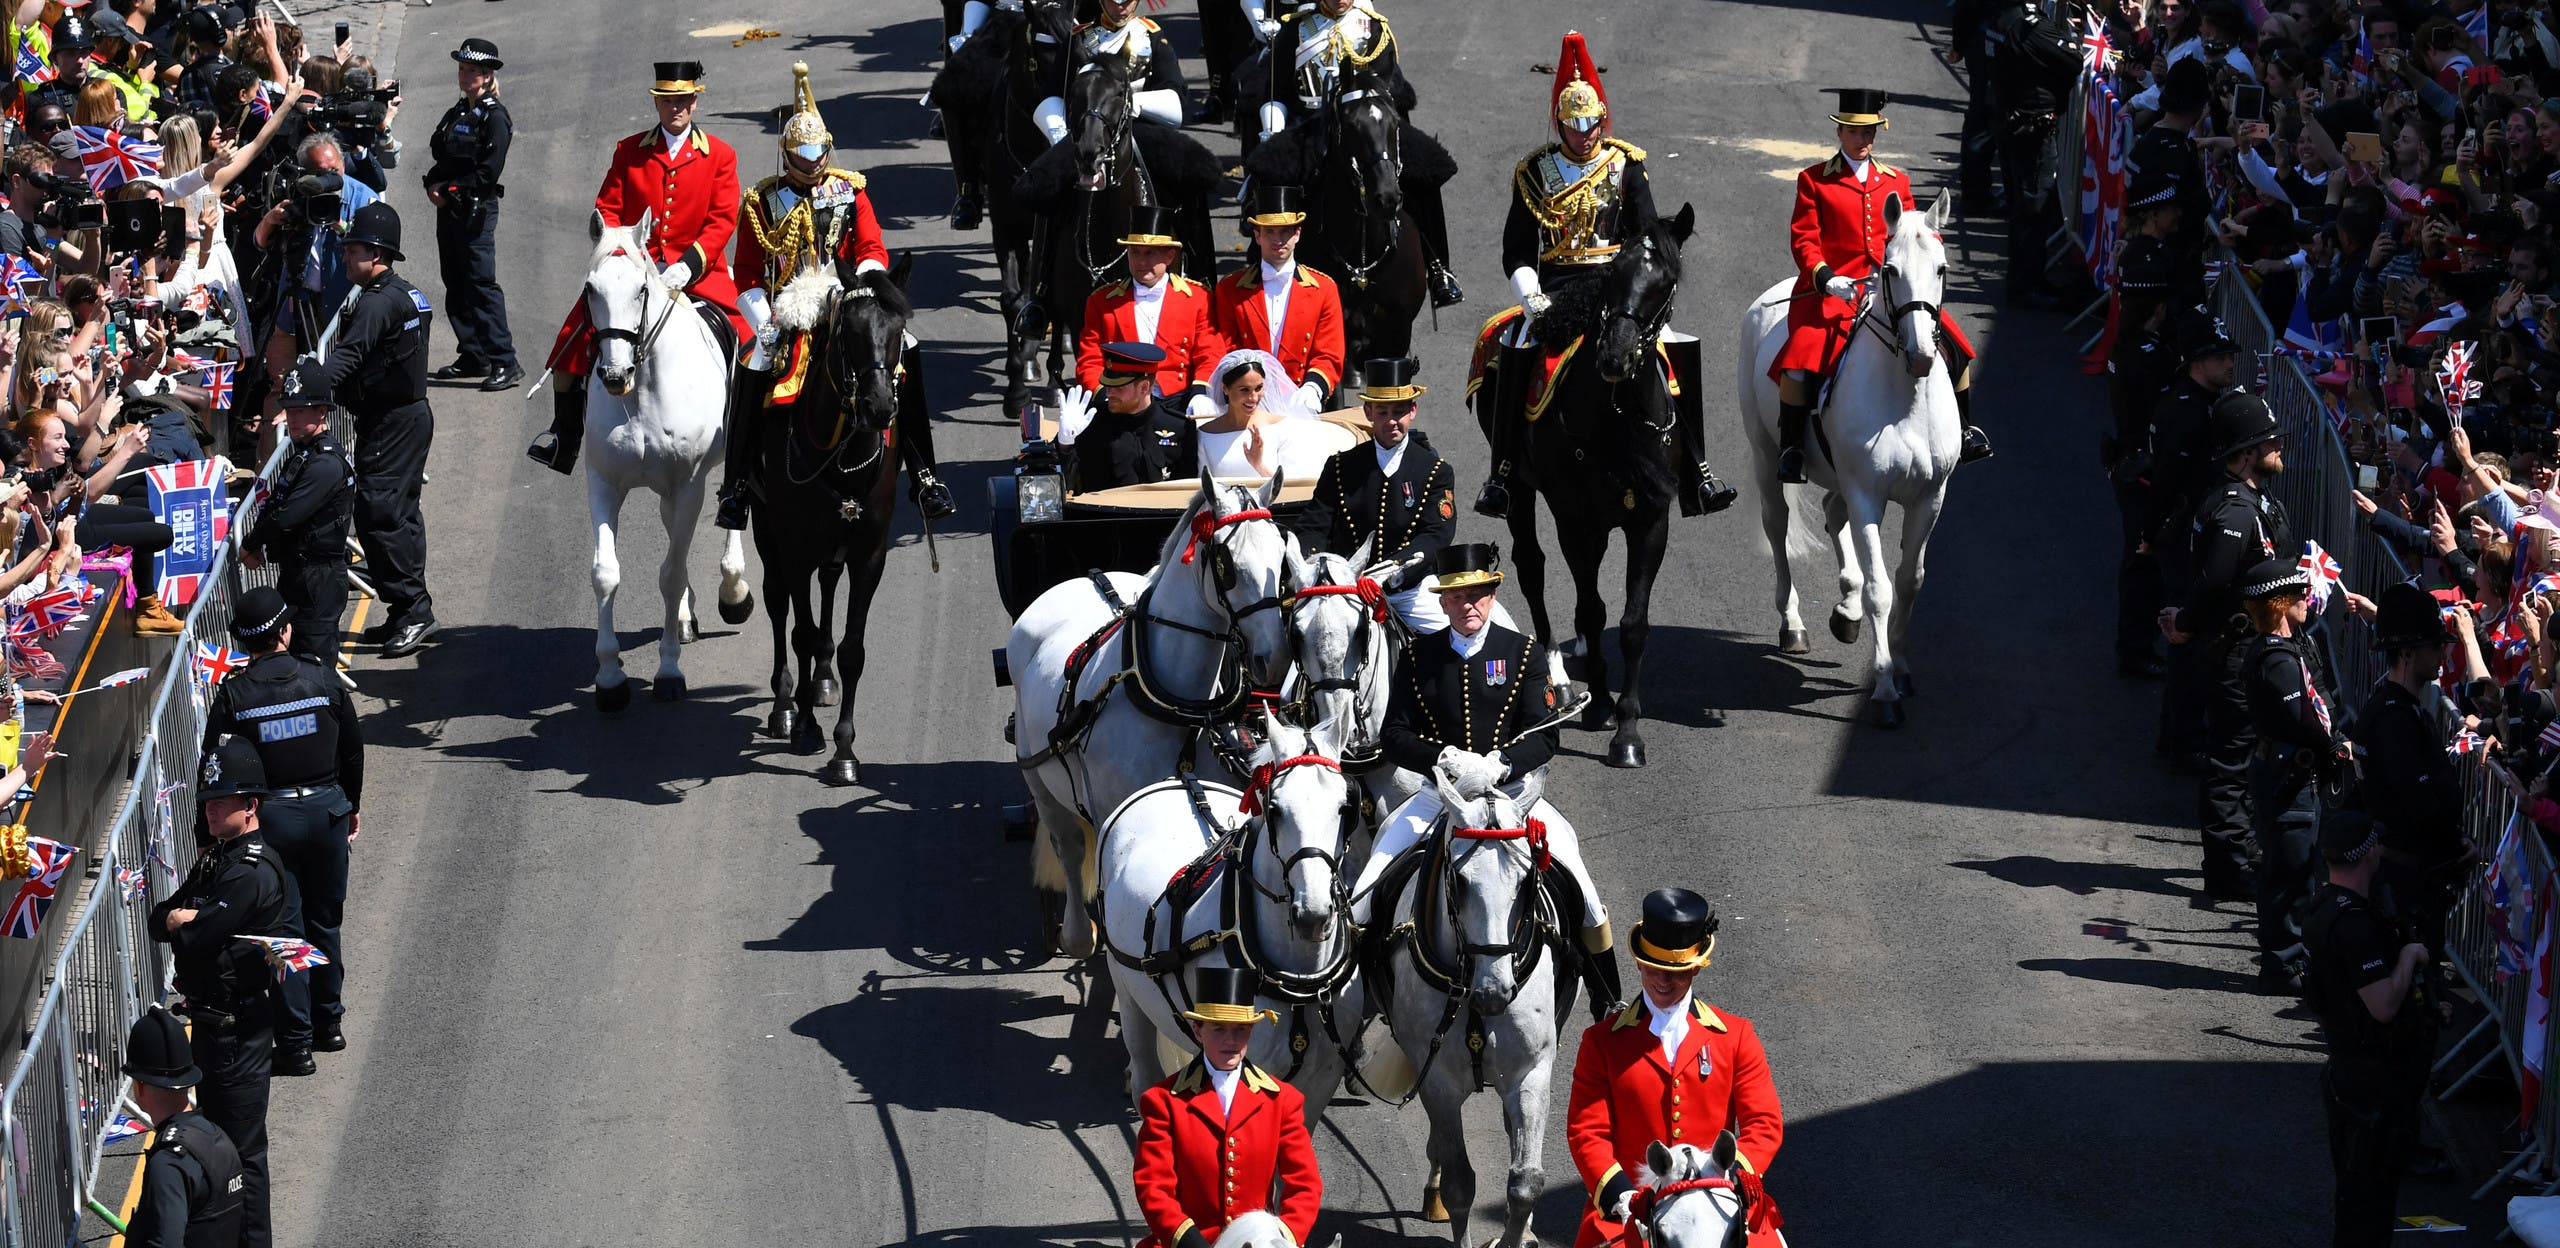 Prince Harry and his wife Meghan Markle ride a horse-drawn carriage after their wedding ceremony at St George's Chapel in Windsor, Britain, May 19, 2018. REUTERS/Dylan Martinez